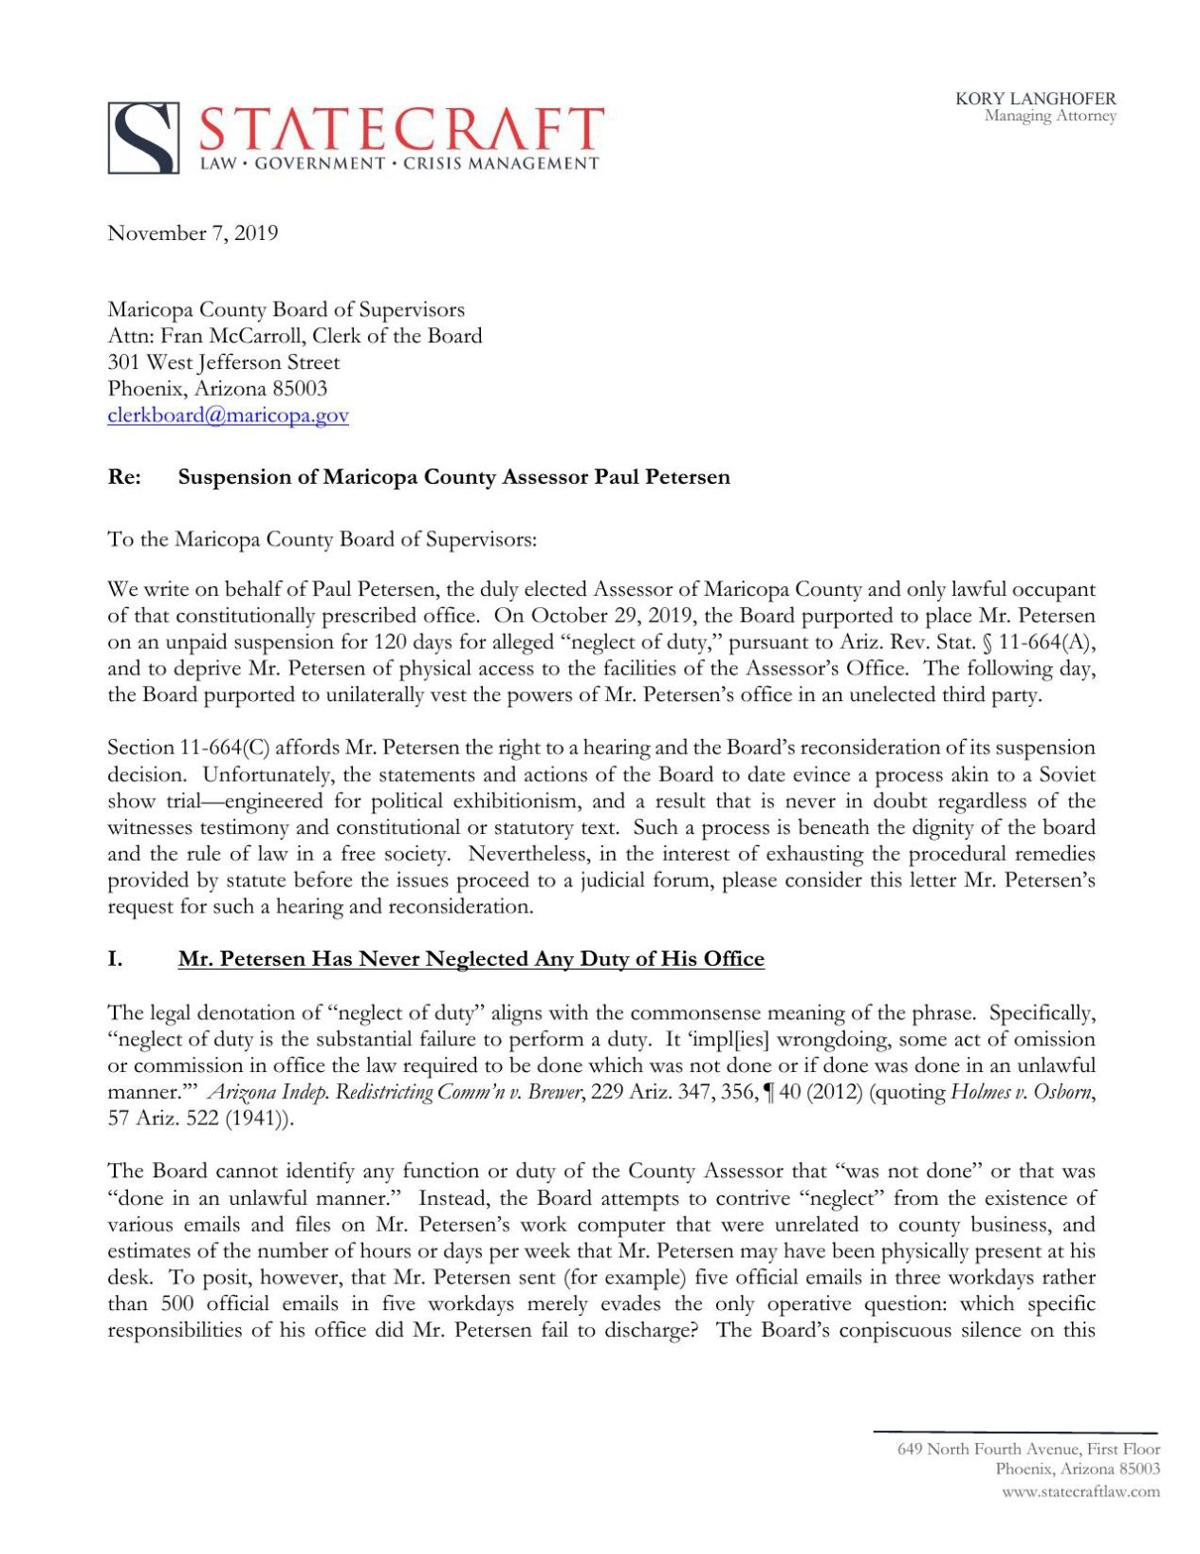 Letter from Paul Petersen's attorney